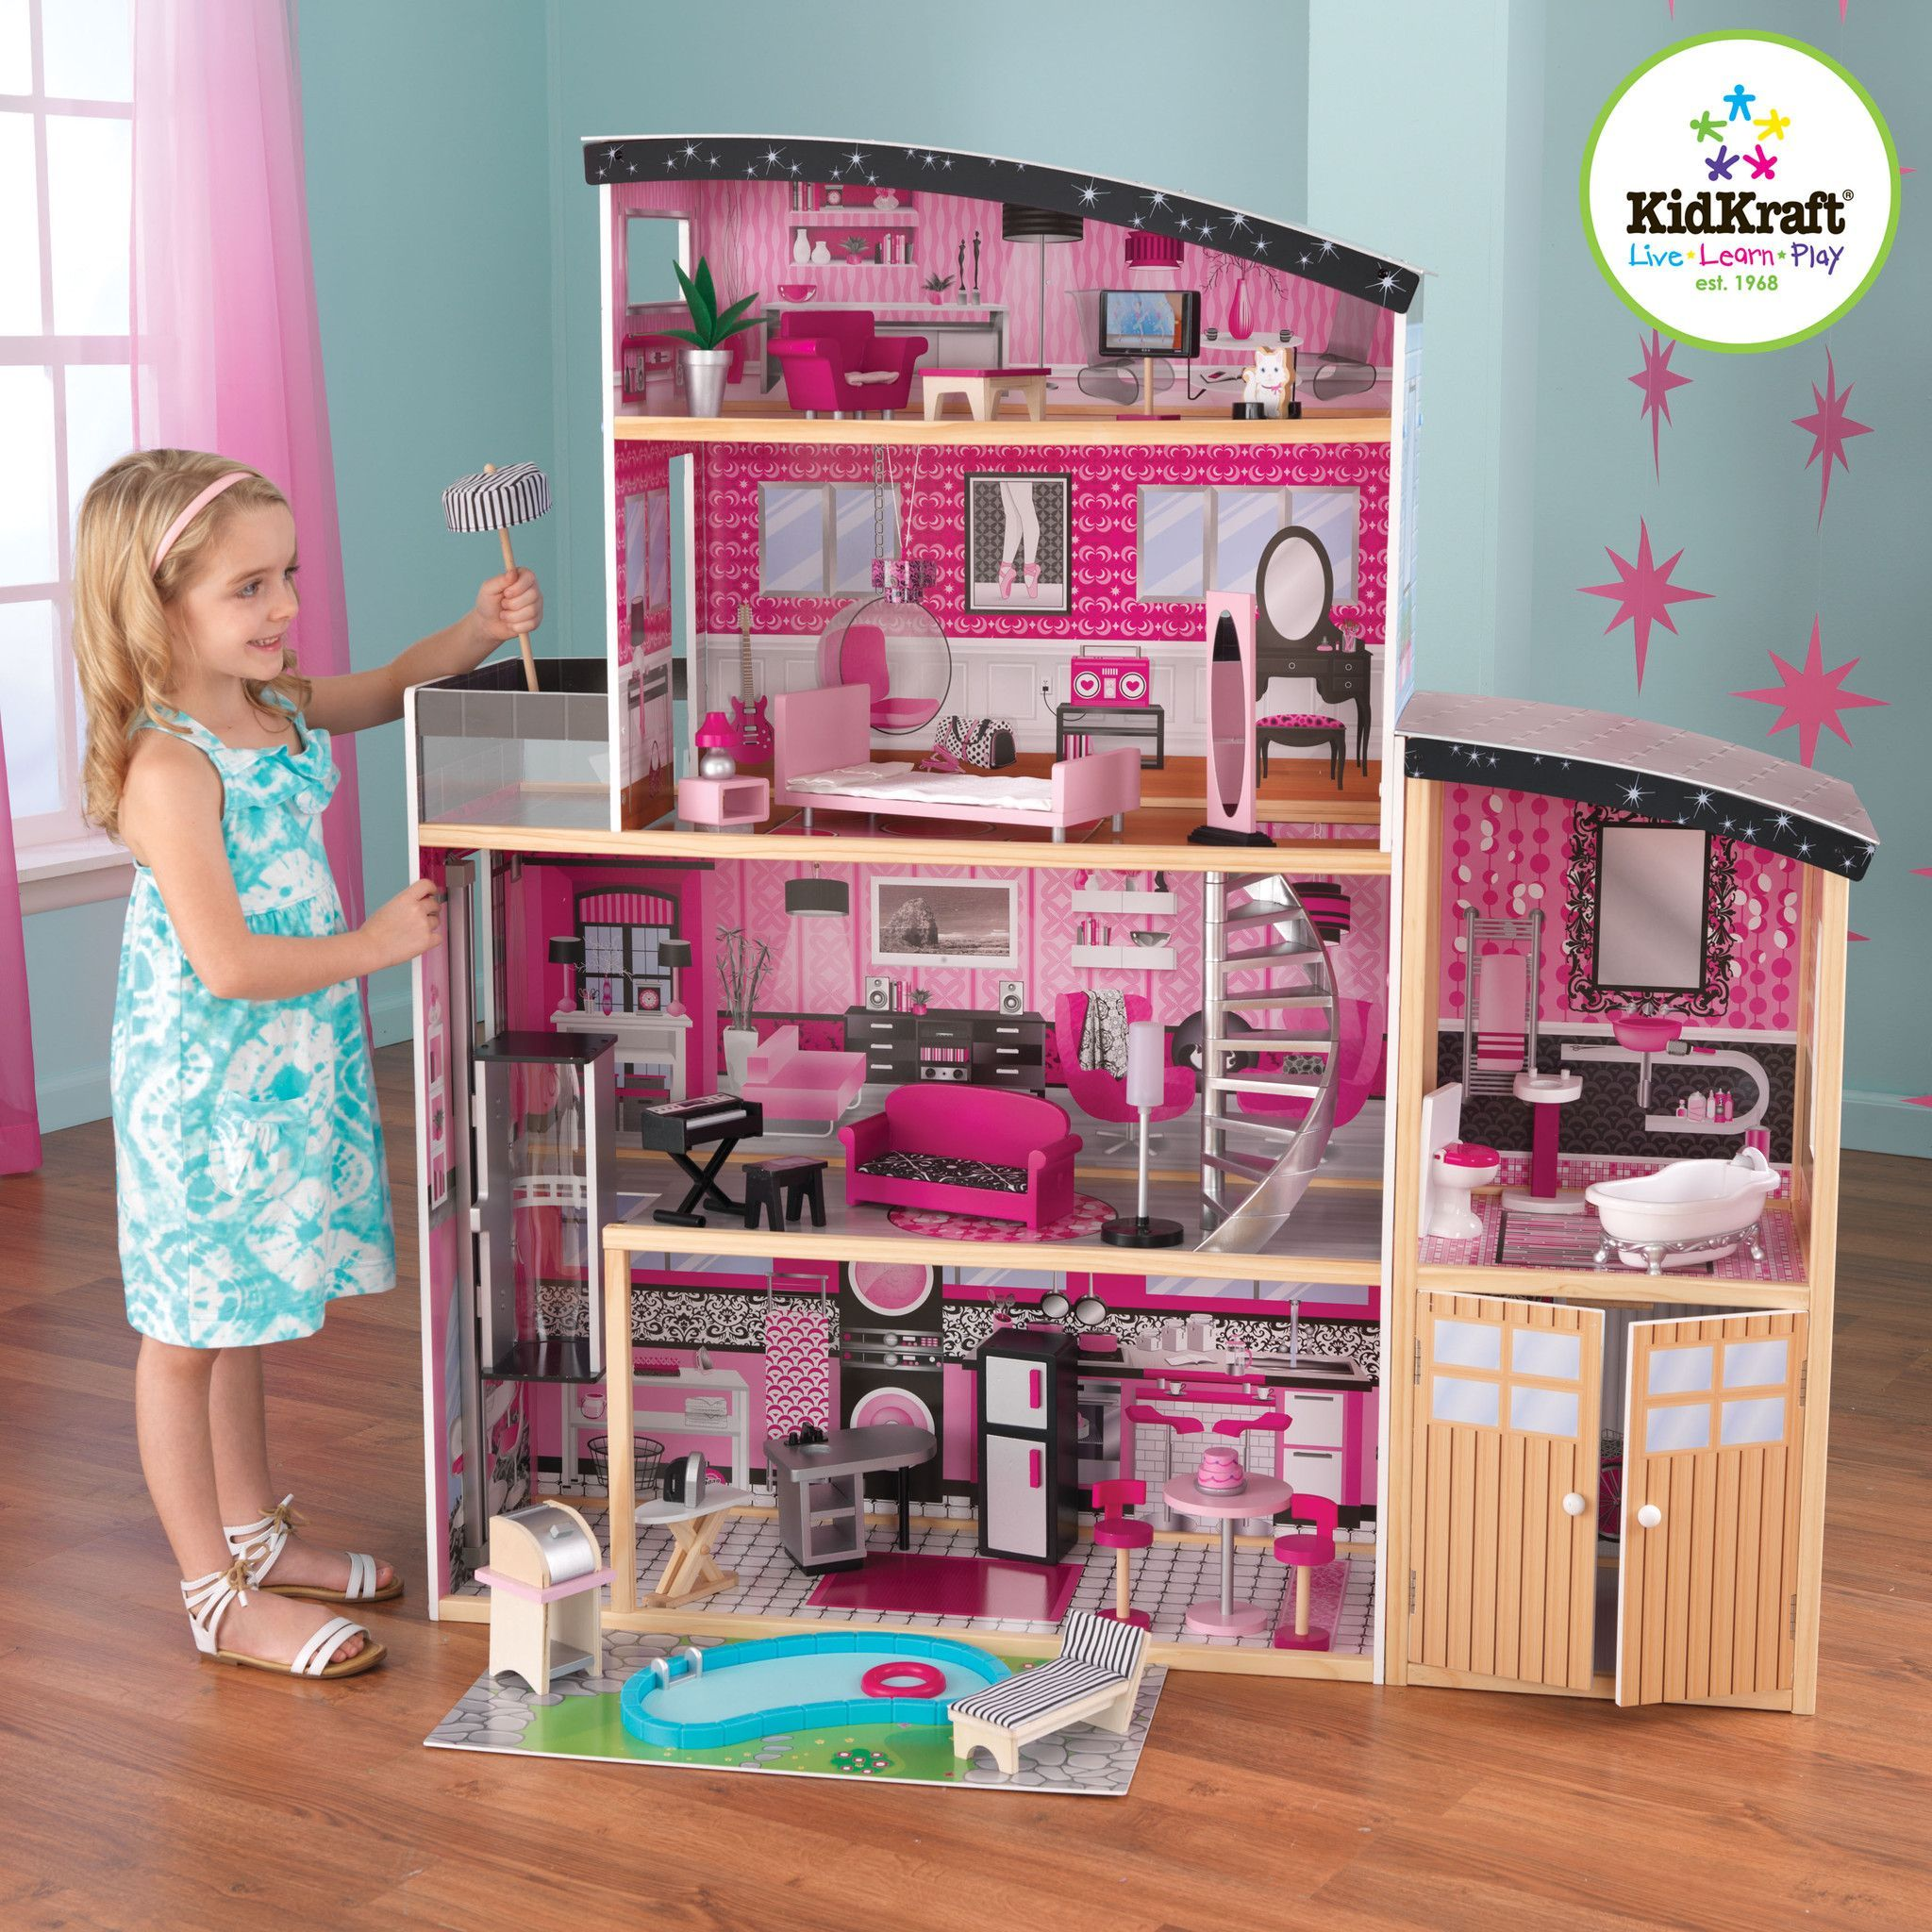 Sparkle Mansion Dollhouse with Furniture | Barbie doll house